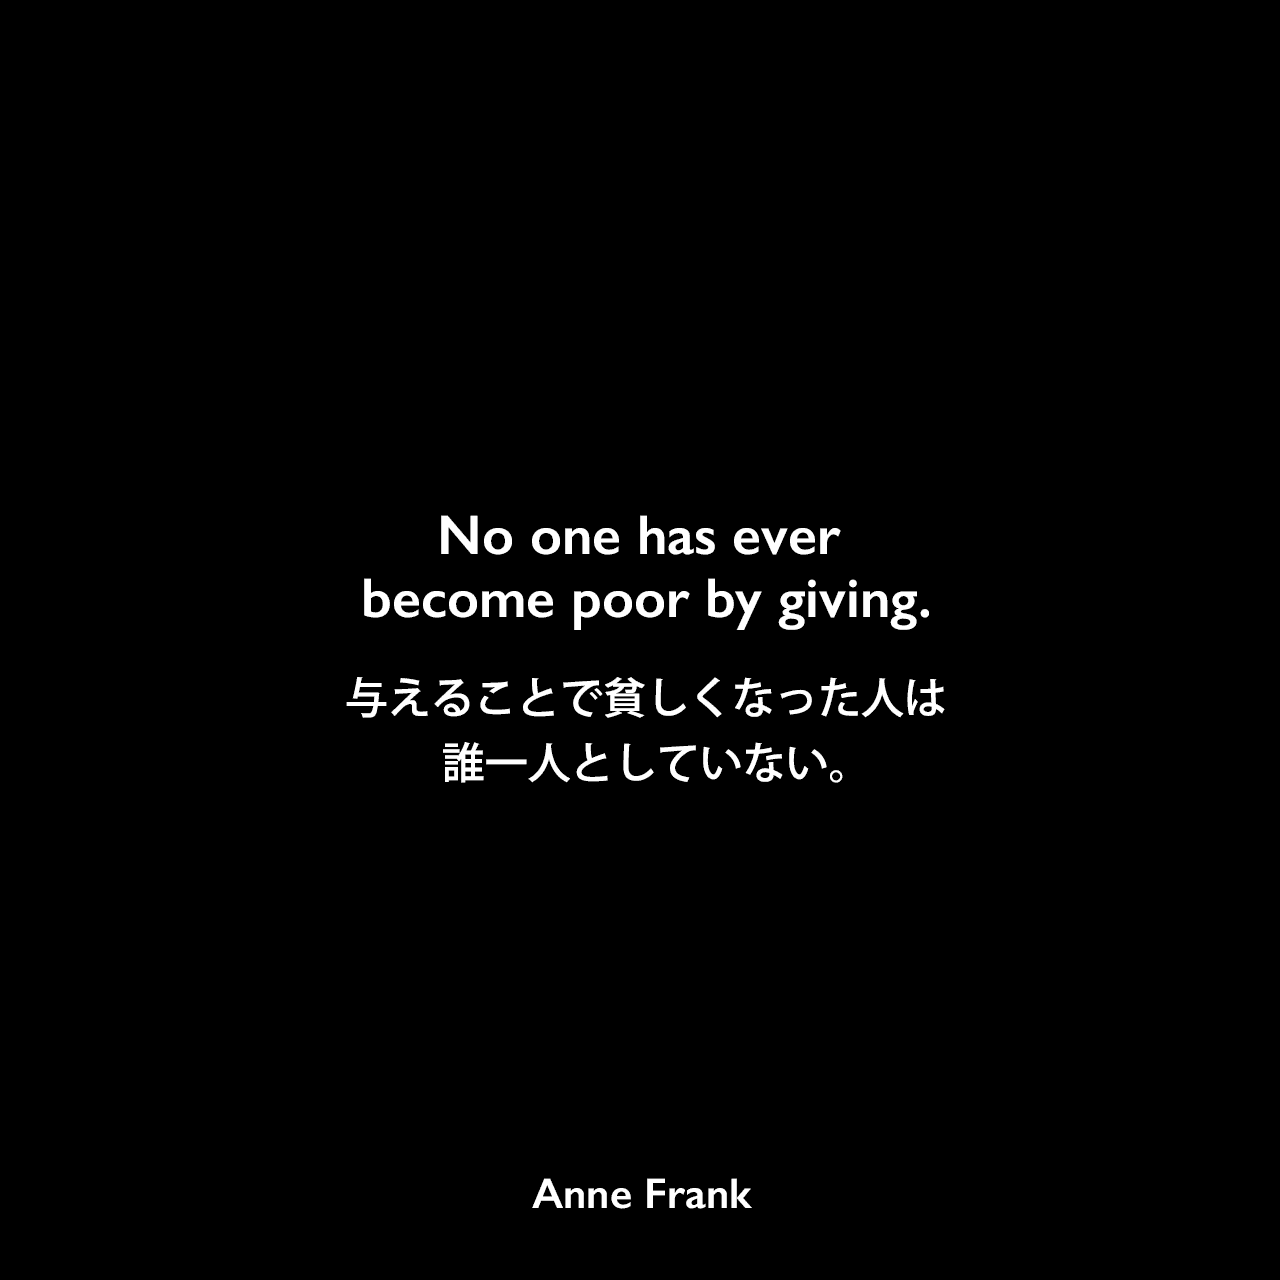 No one has ever become poor by giving.与えることで貧しくなった人は、誰一人としていない。Anne Frank